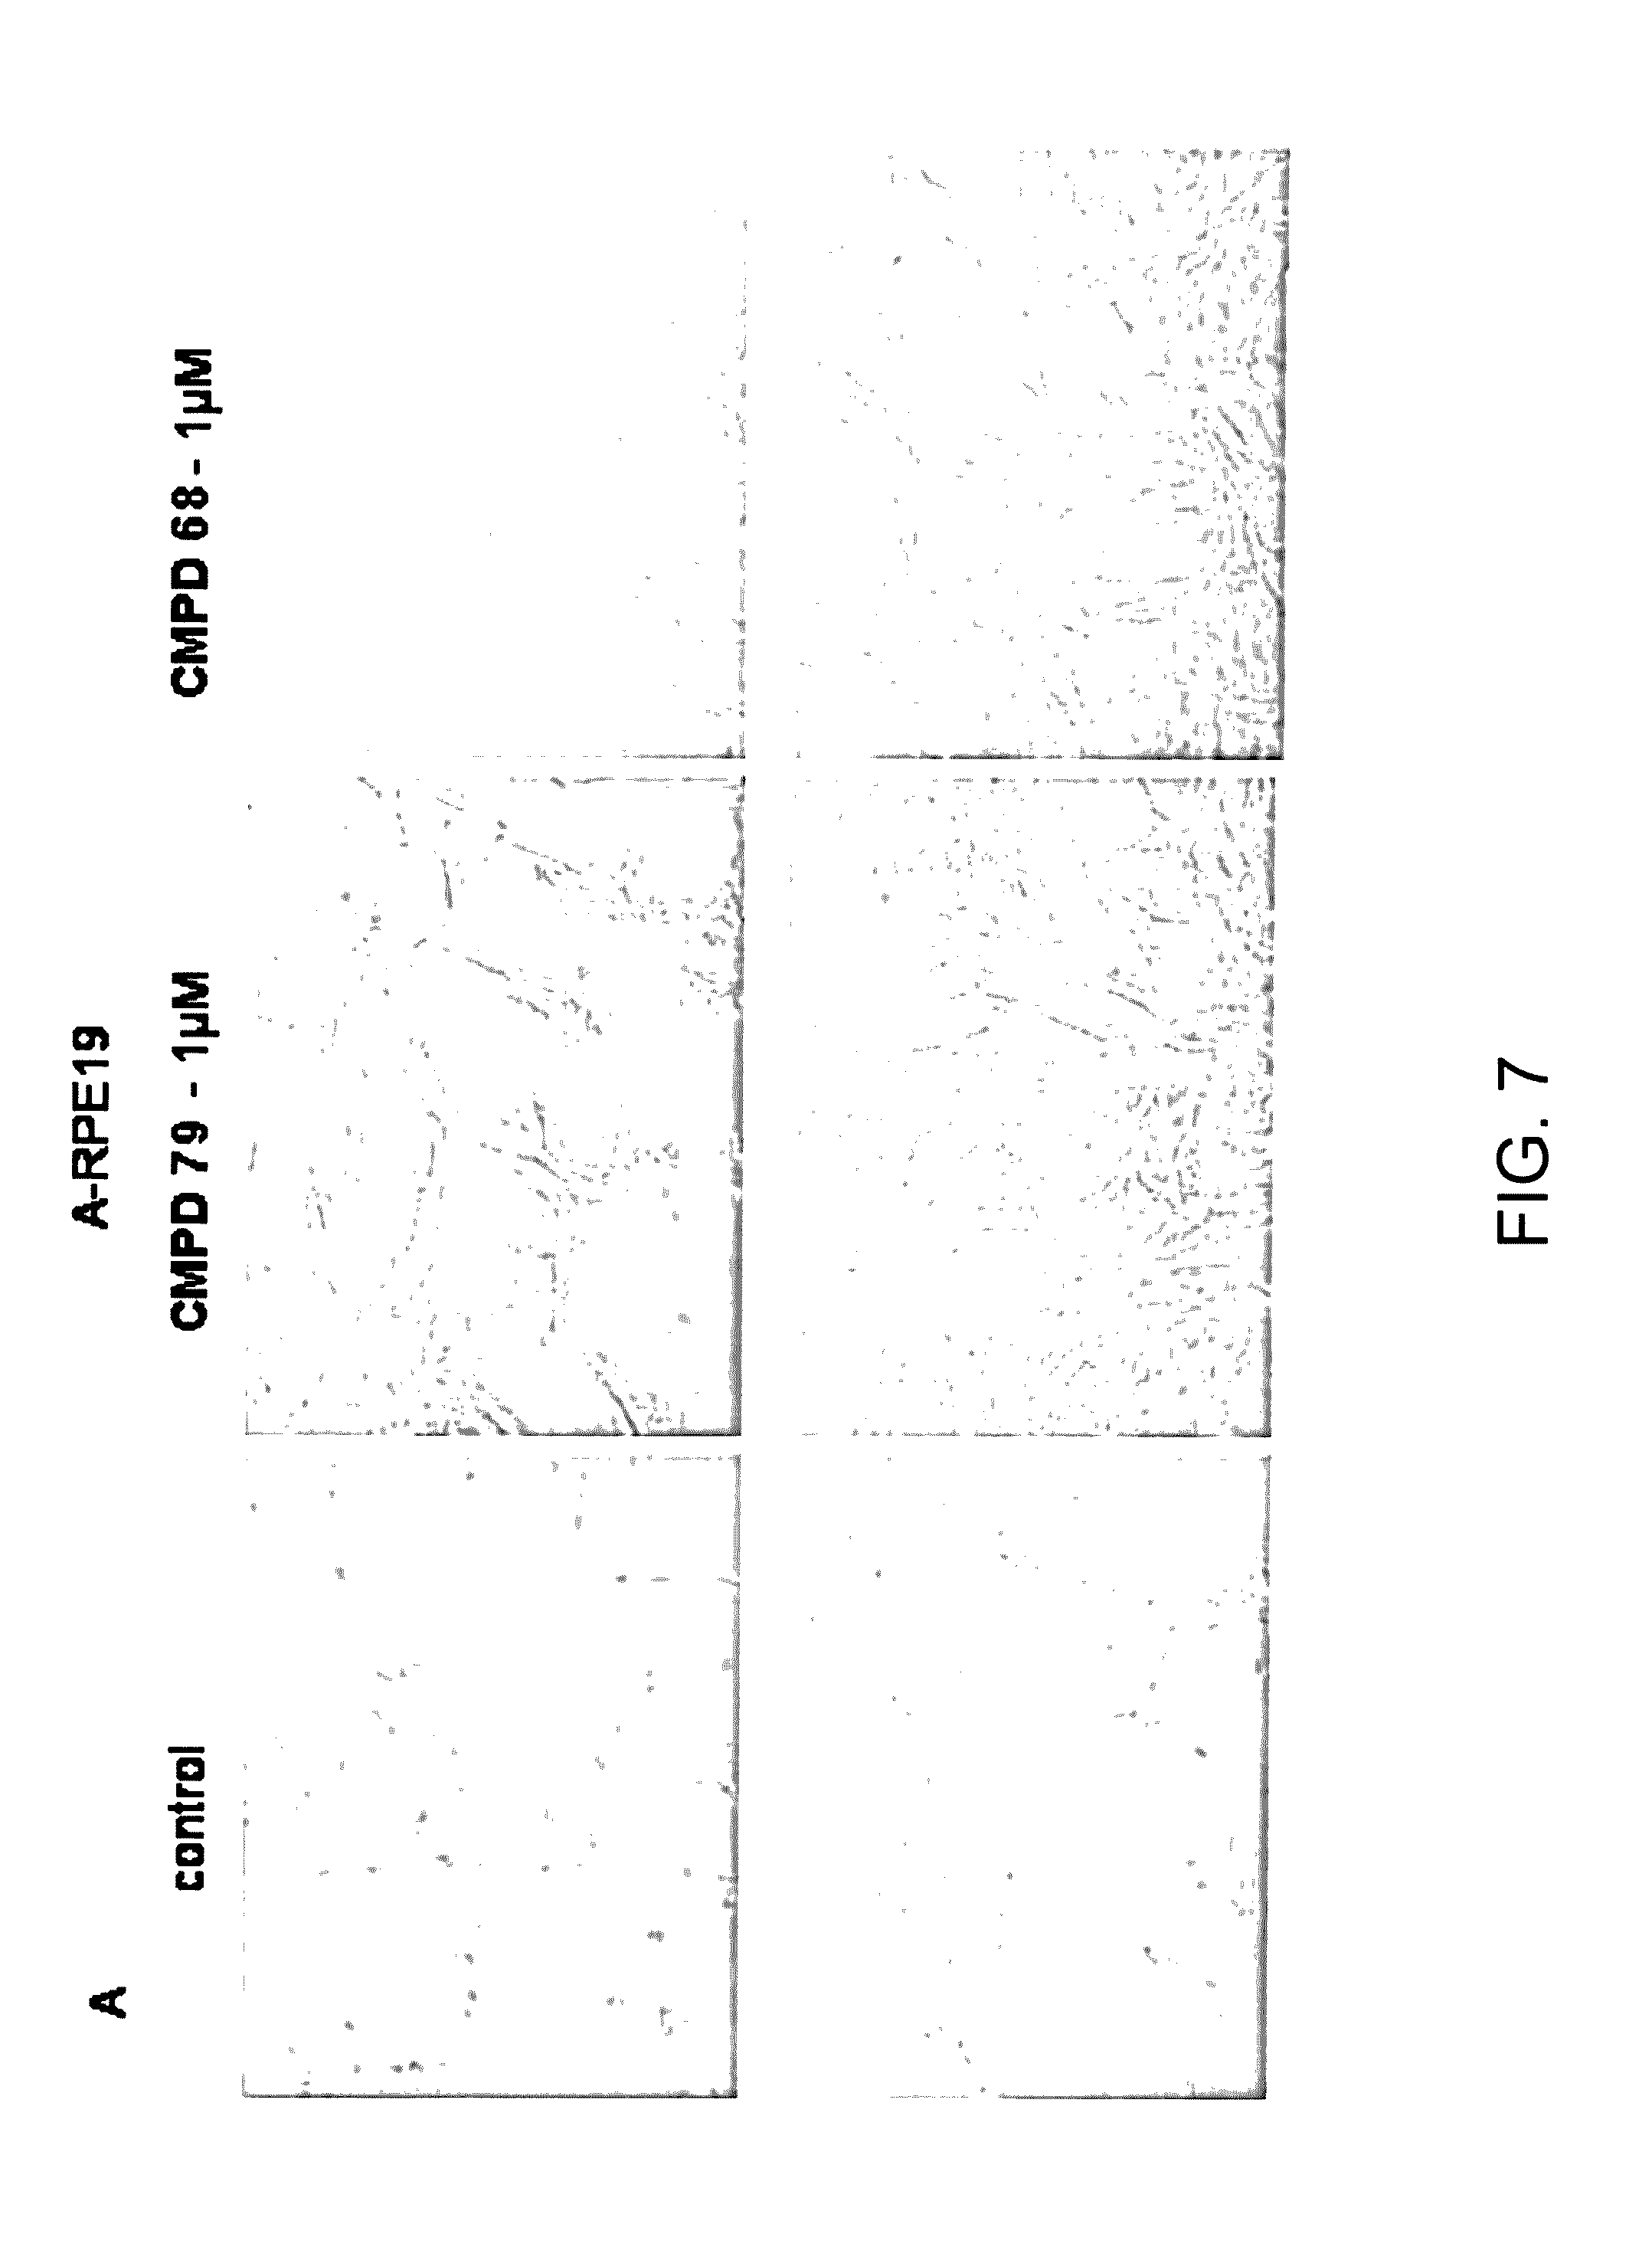 US9670138B2 - Telomerase activating compounds and methods of